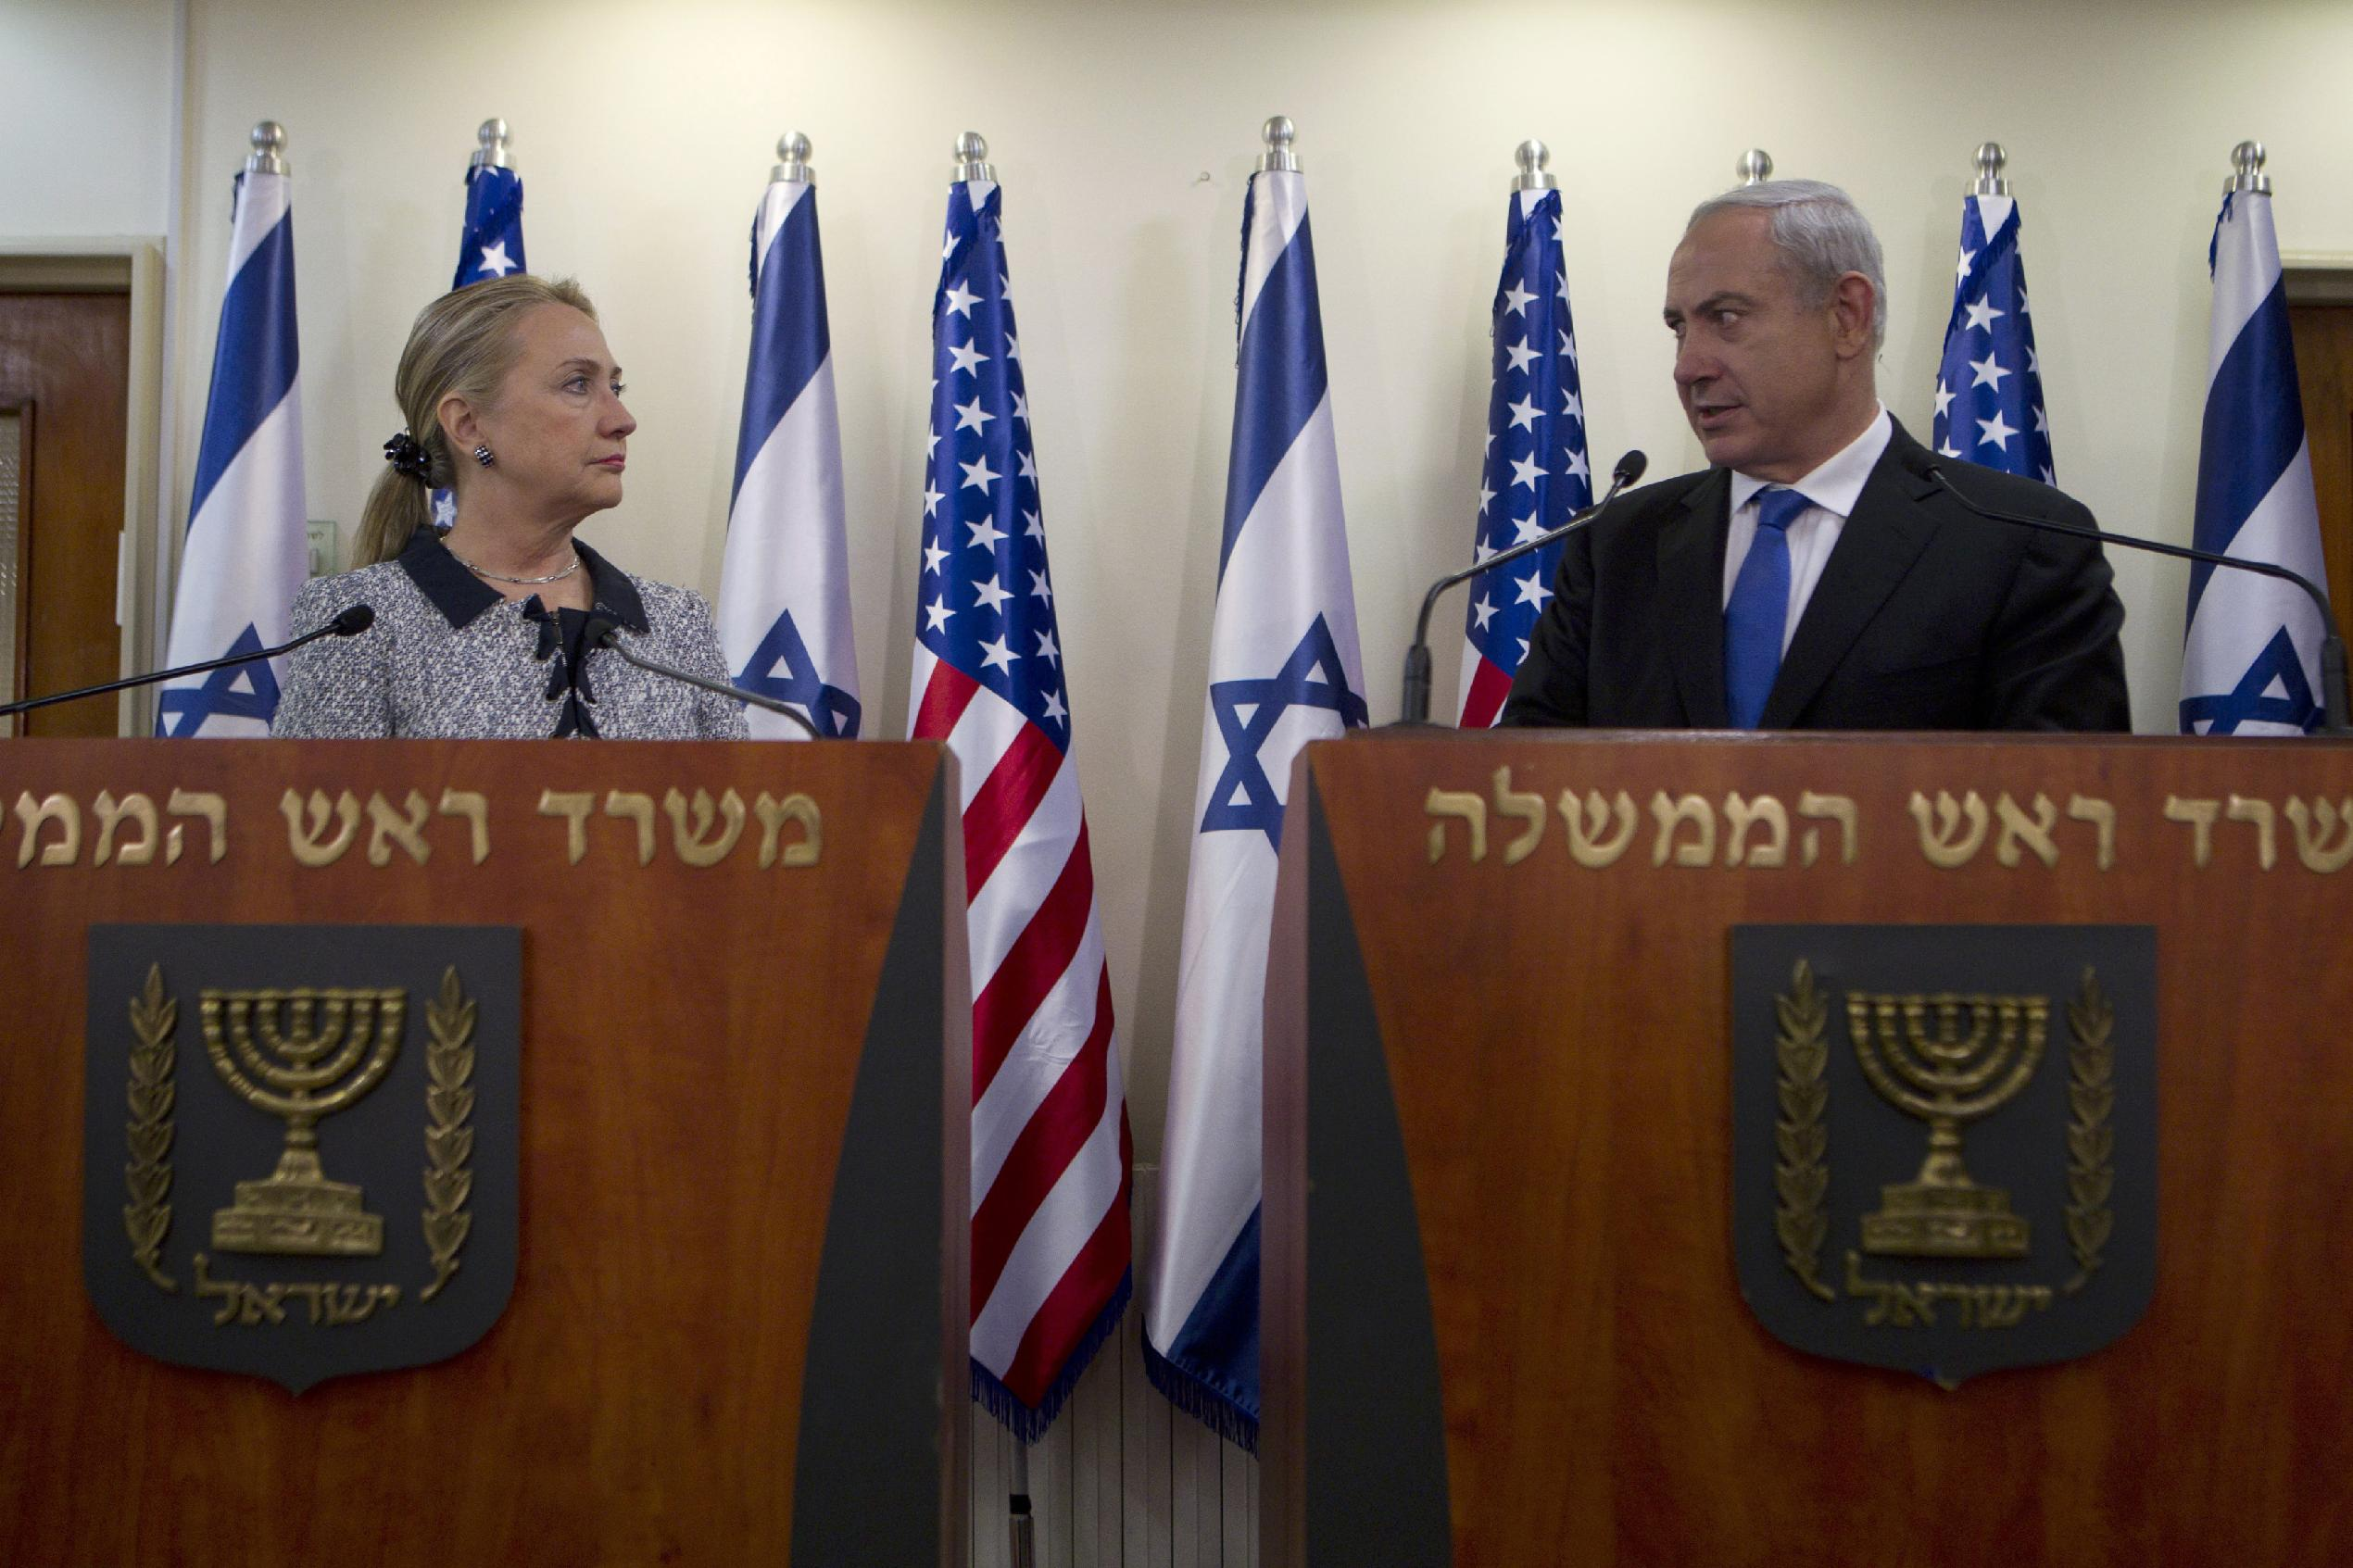 U.S. Secretary of State Hillary Rodham Clinton and Israel's Prime Minister Benjamin Netanyahu deliver joint statements in Jerusalem. (Baz Ratner/Pool via AP)